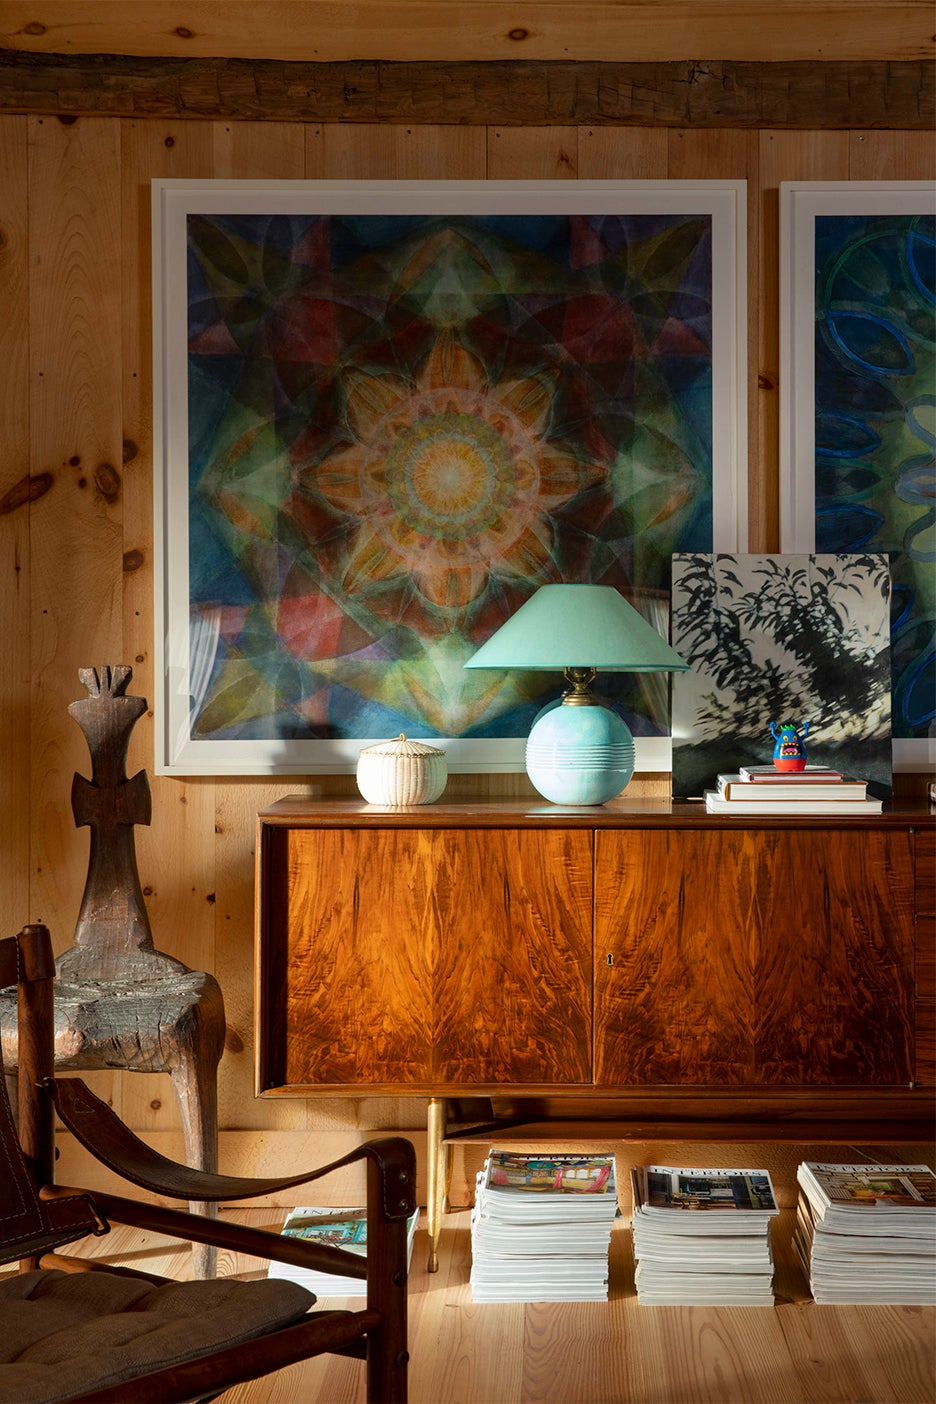 Mid-century credenza with turquoise lamp